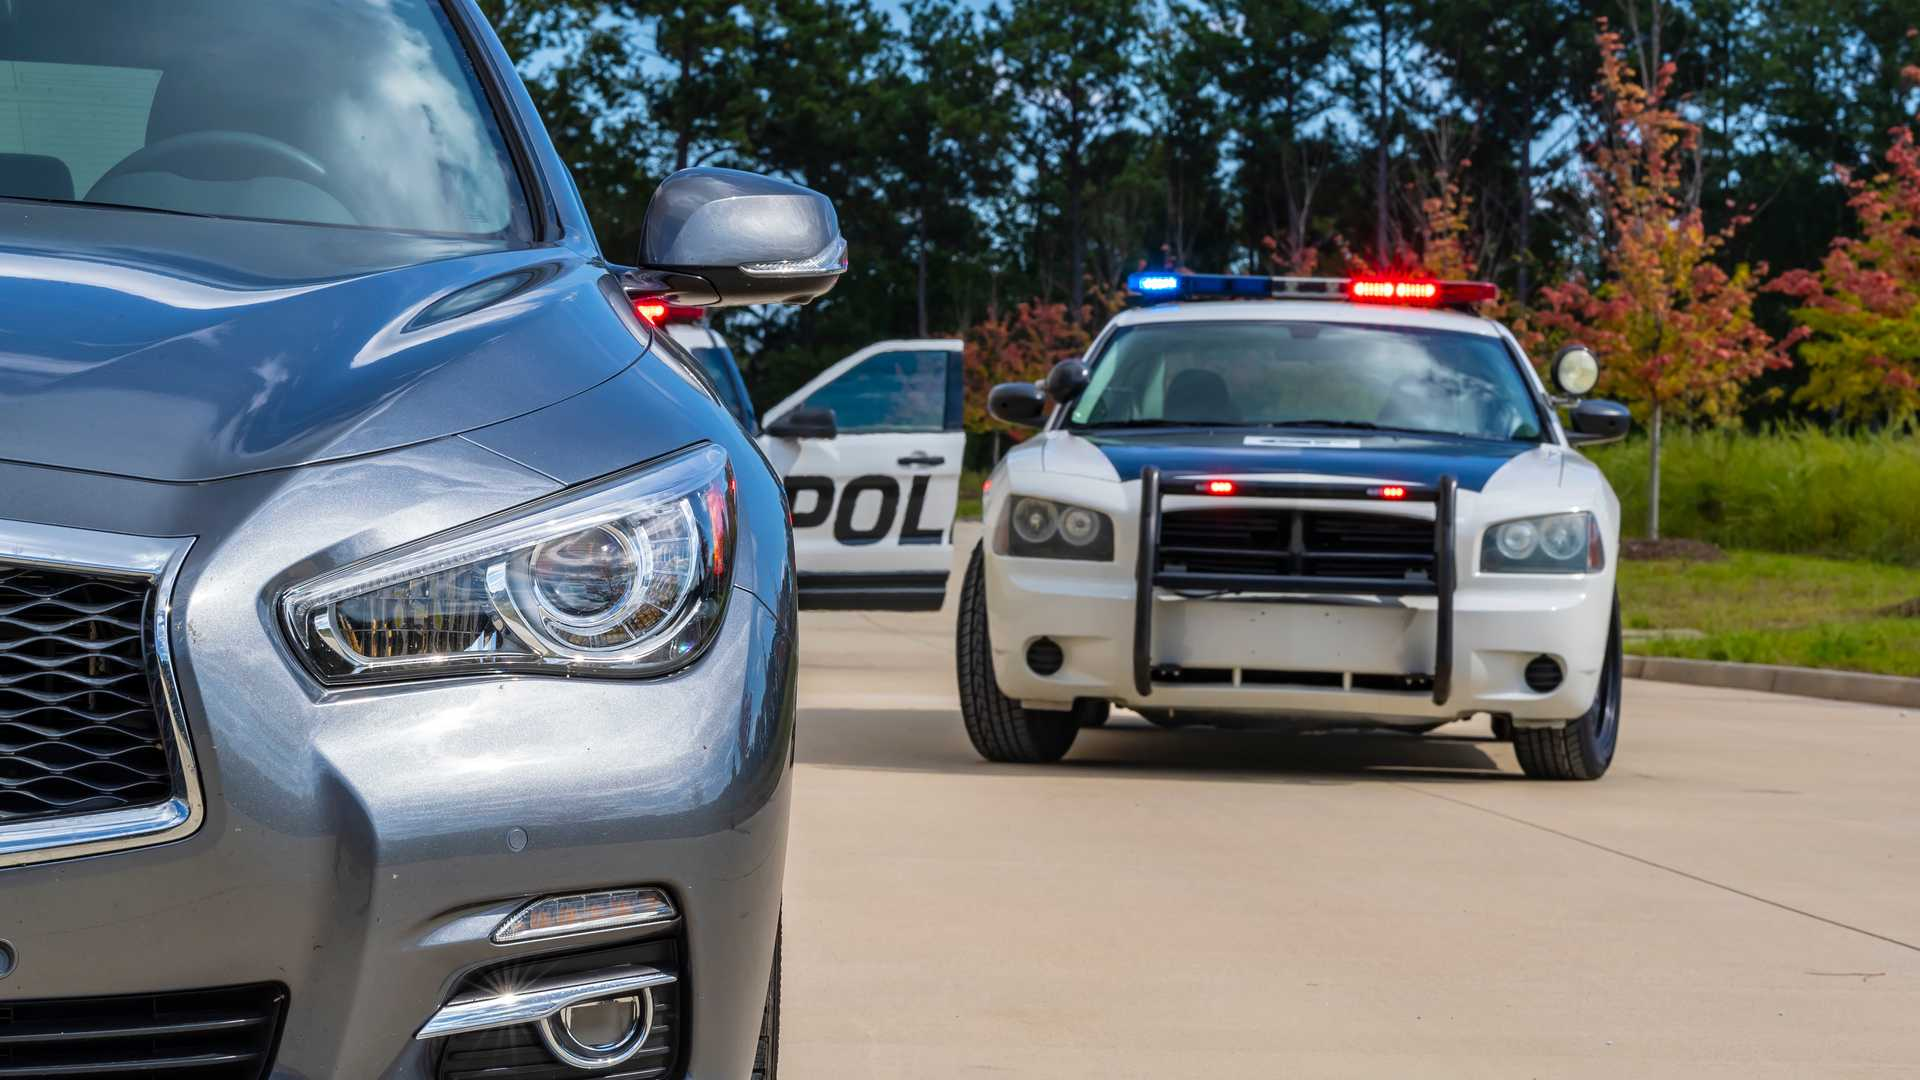 Are You Breaking The Law By Refusing A Police Officer's Request To Exit Your Car?